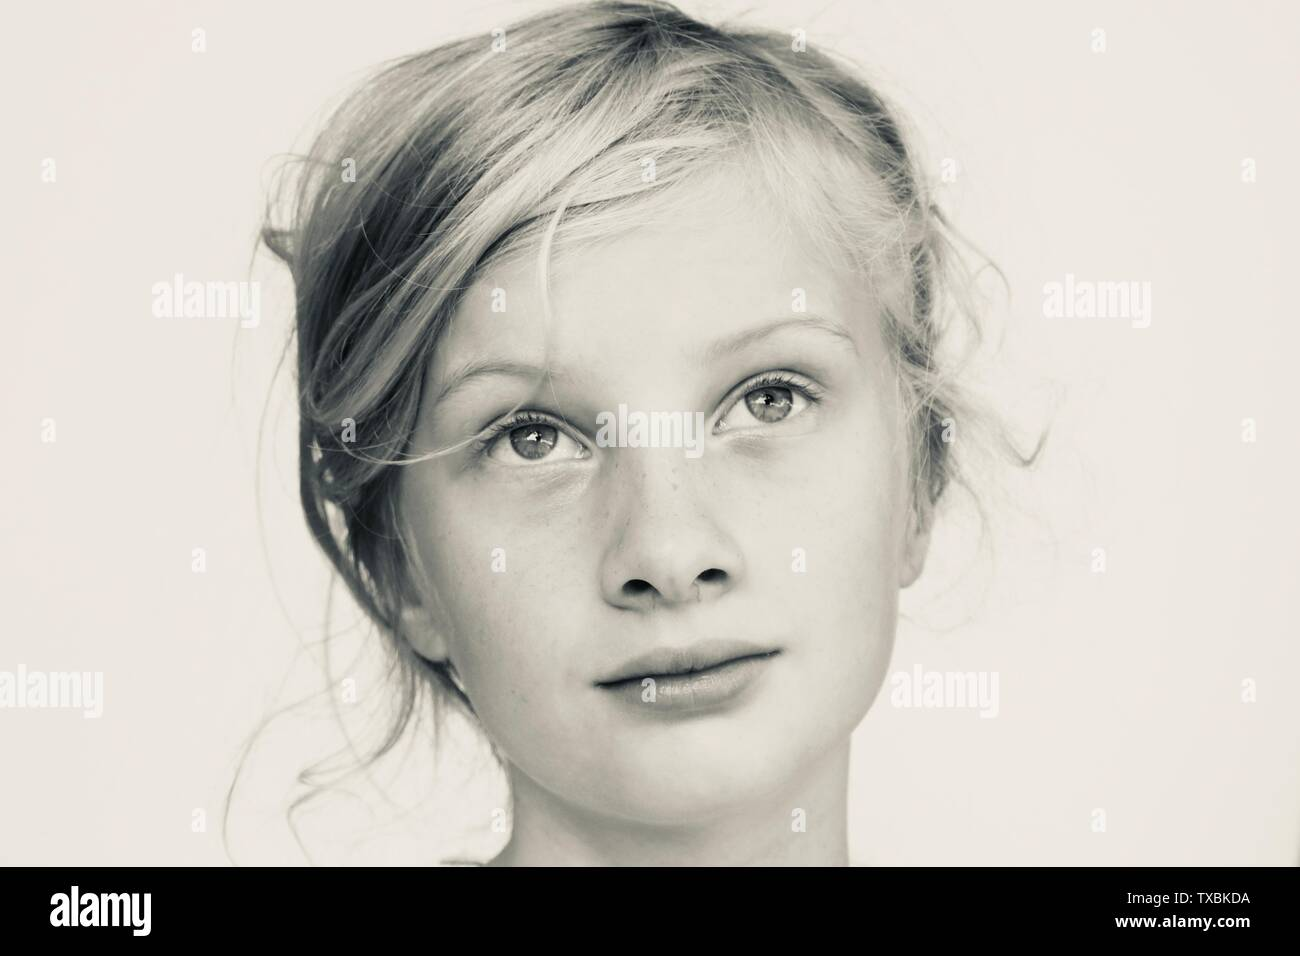 Portrait of a young girl looking wistful in black and white Stock Photo